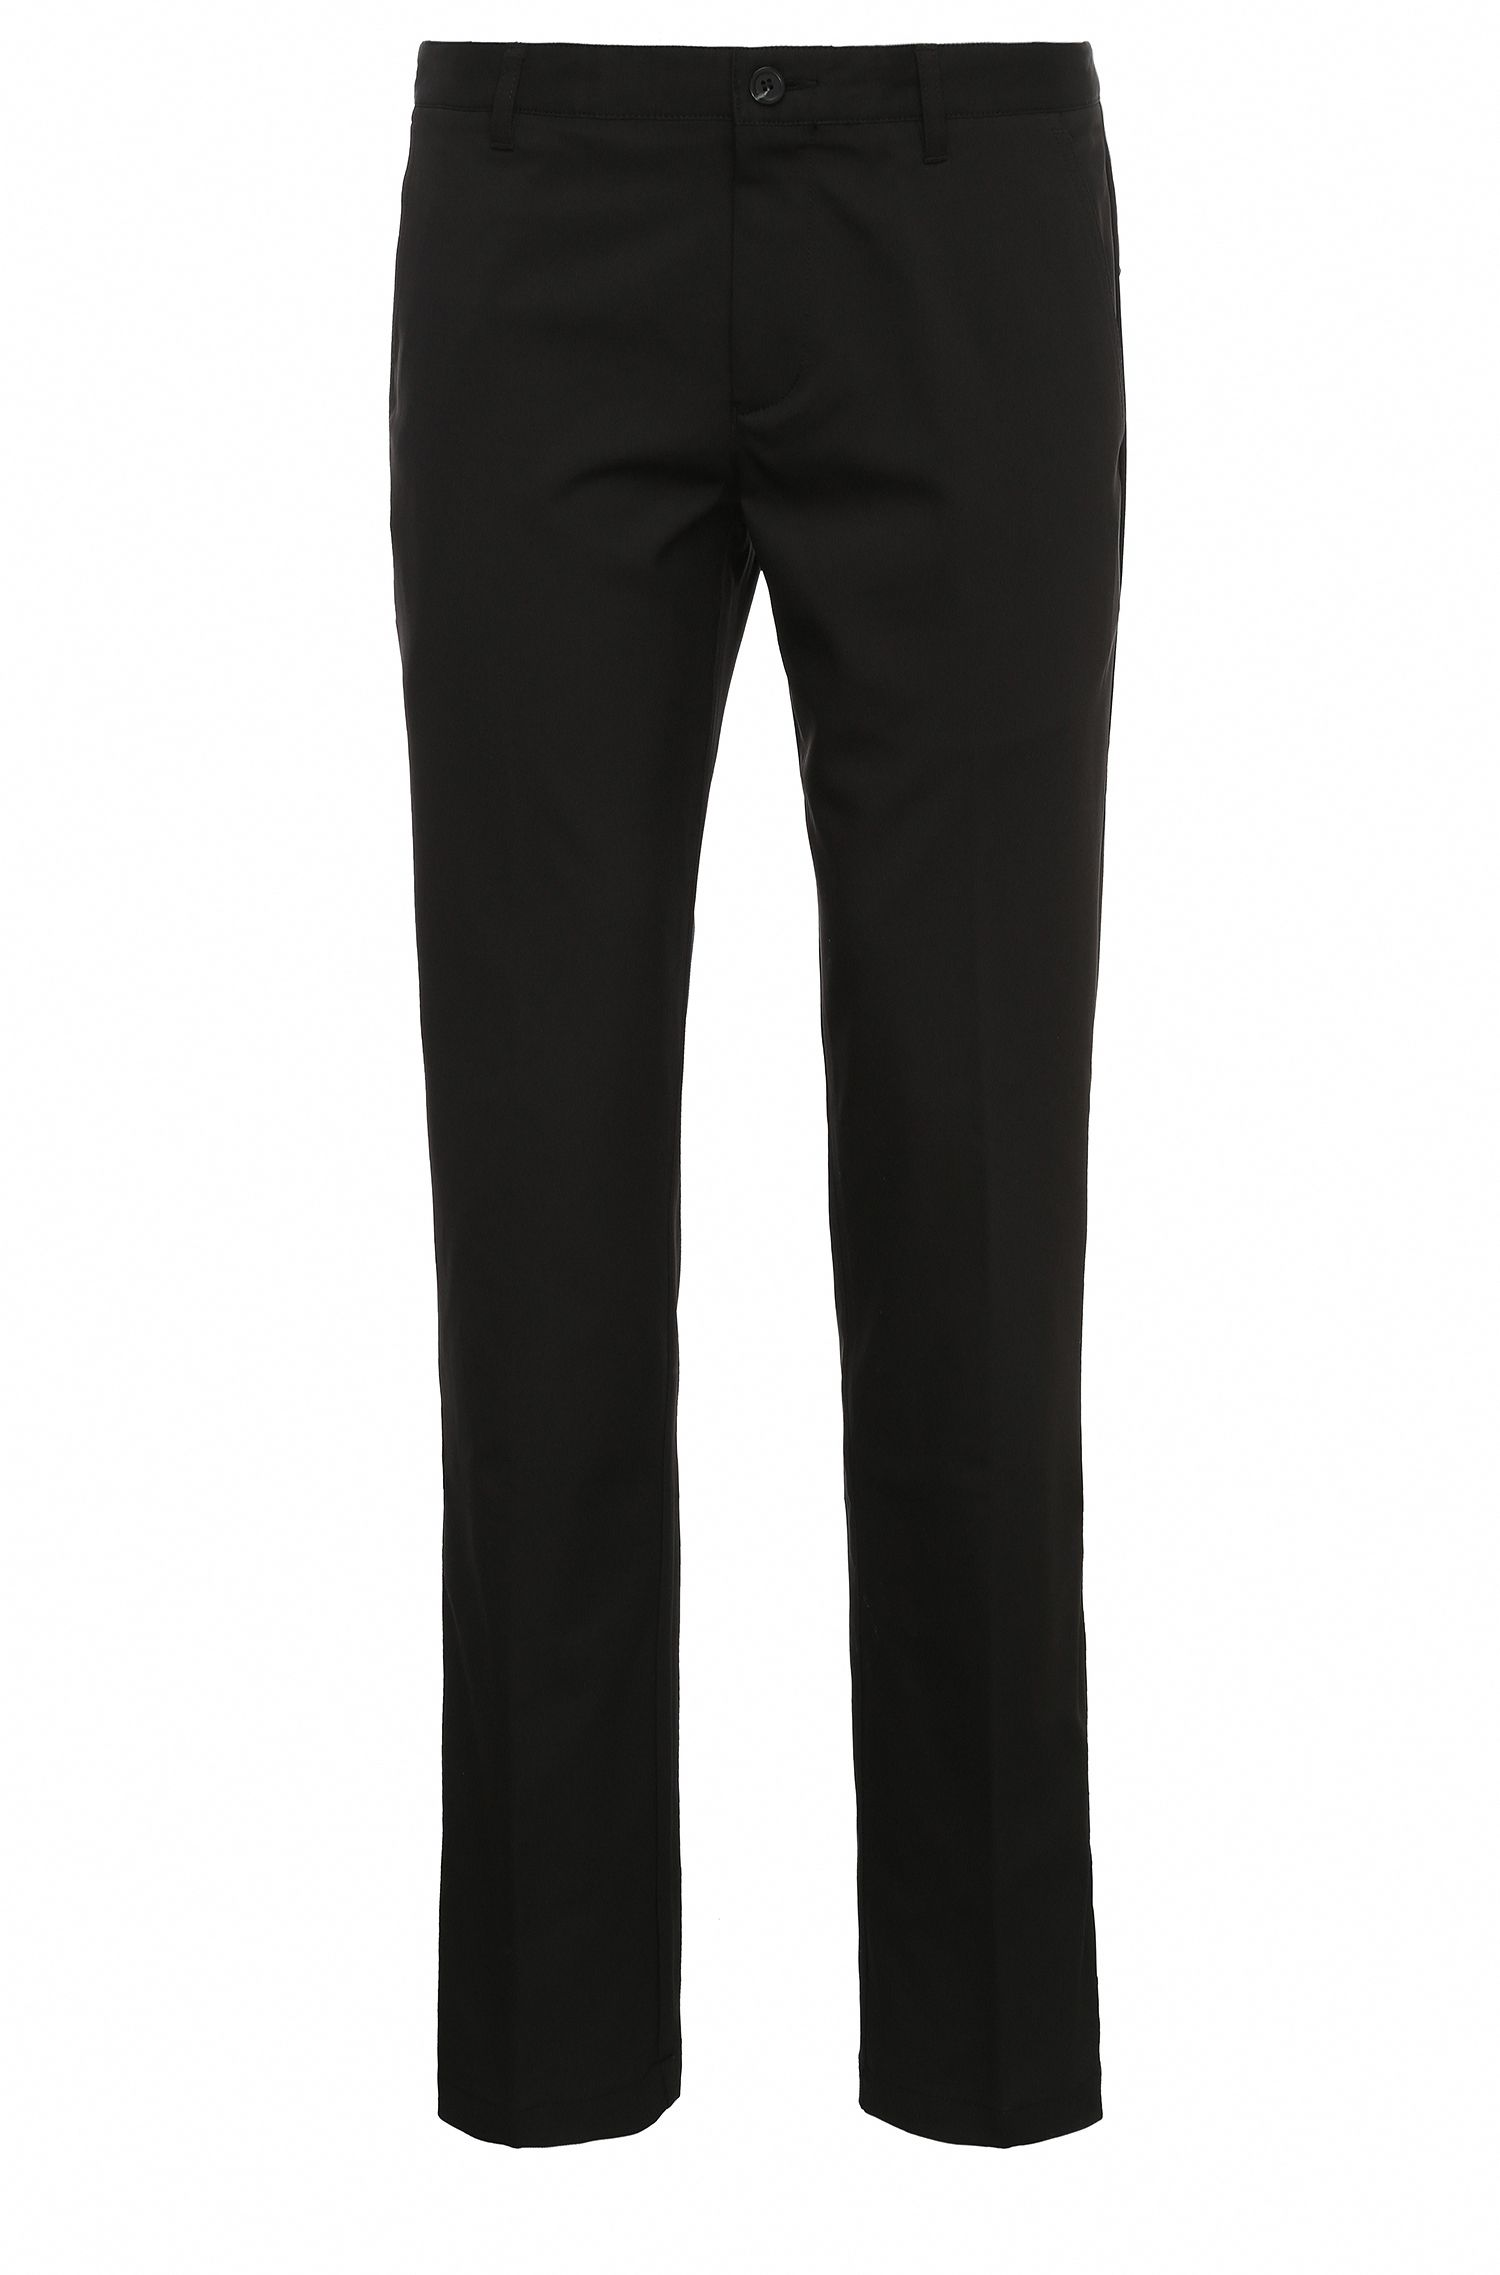 'Hakan' | Slim Fit, CoolMax Performance Golf Pants